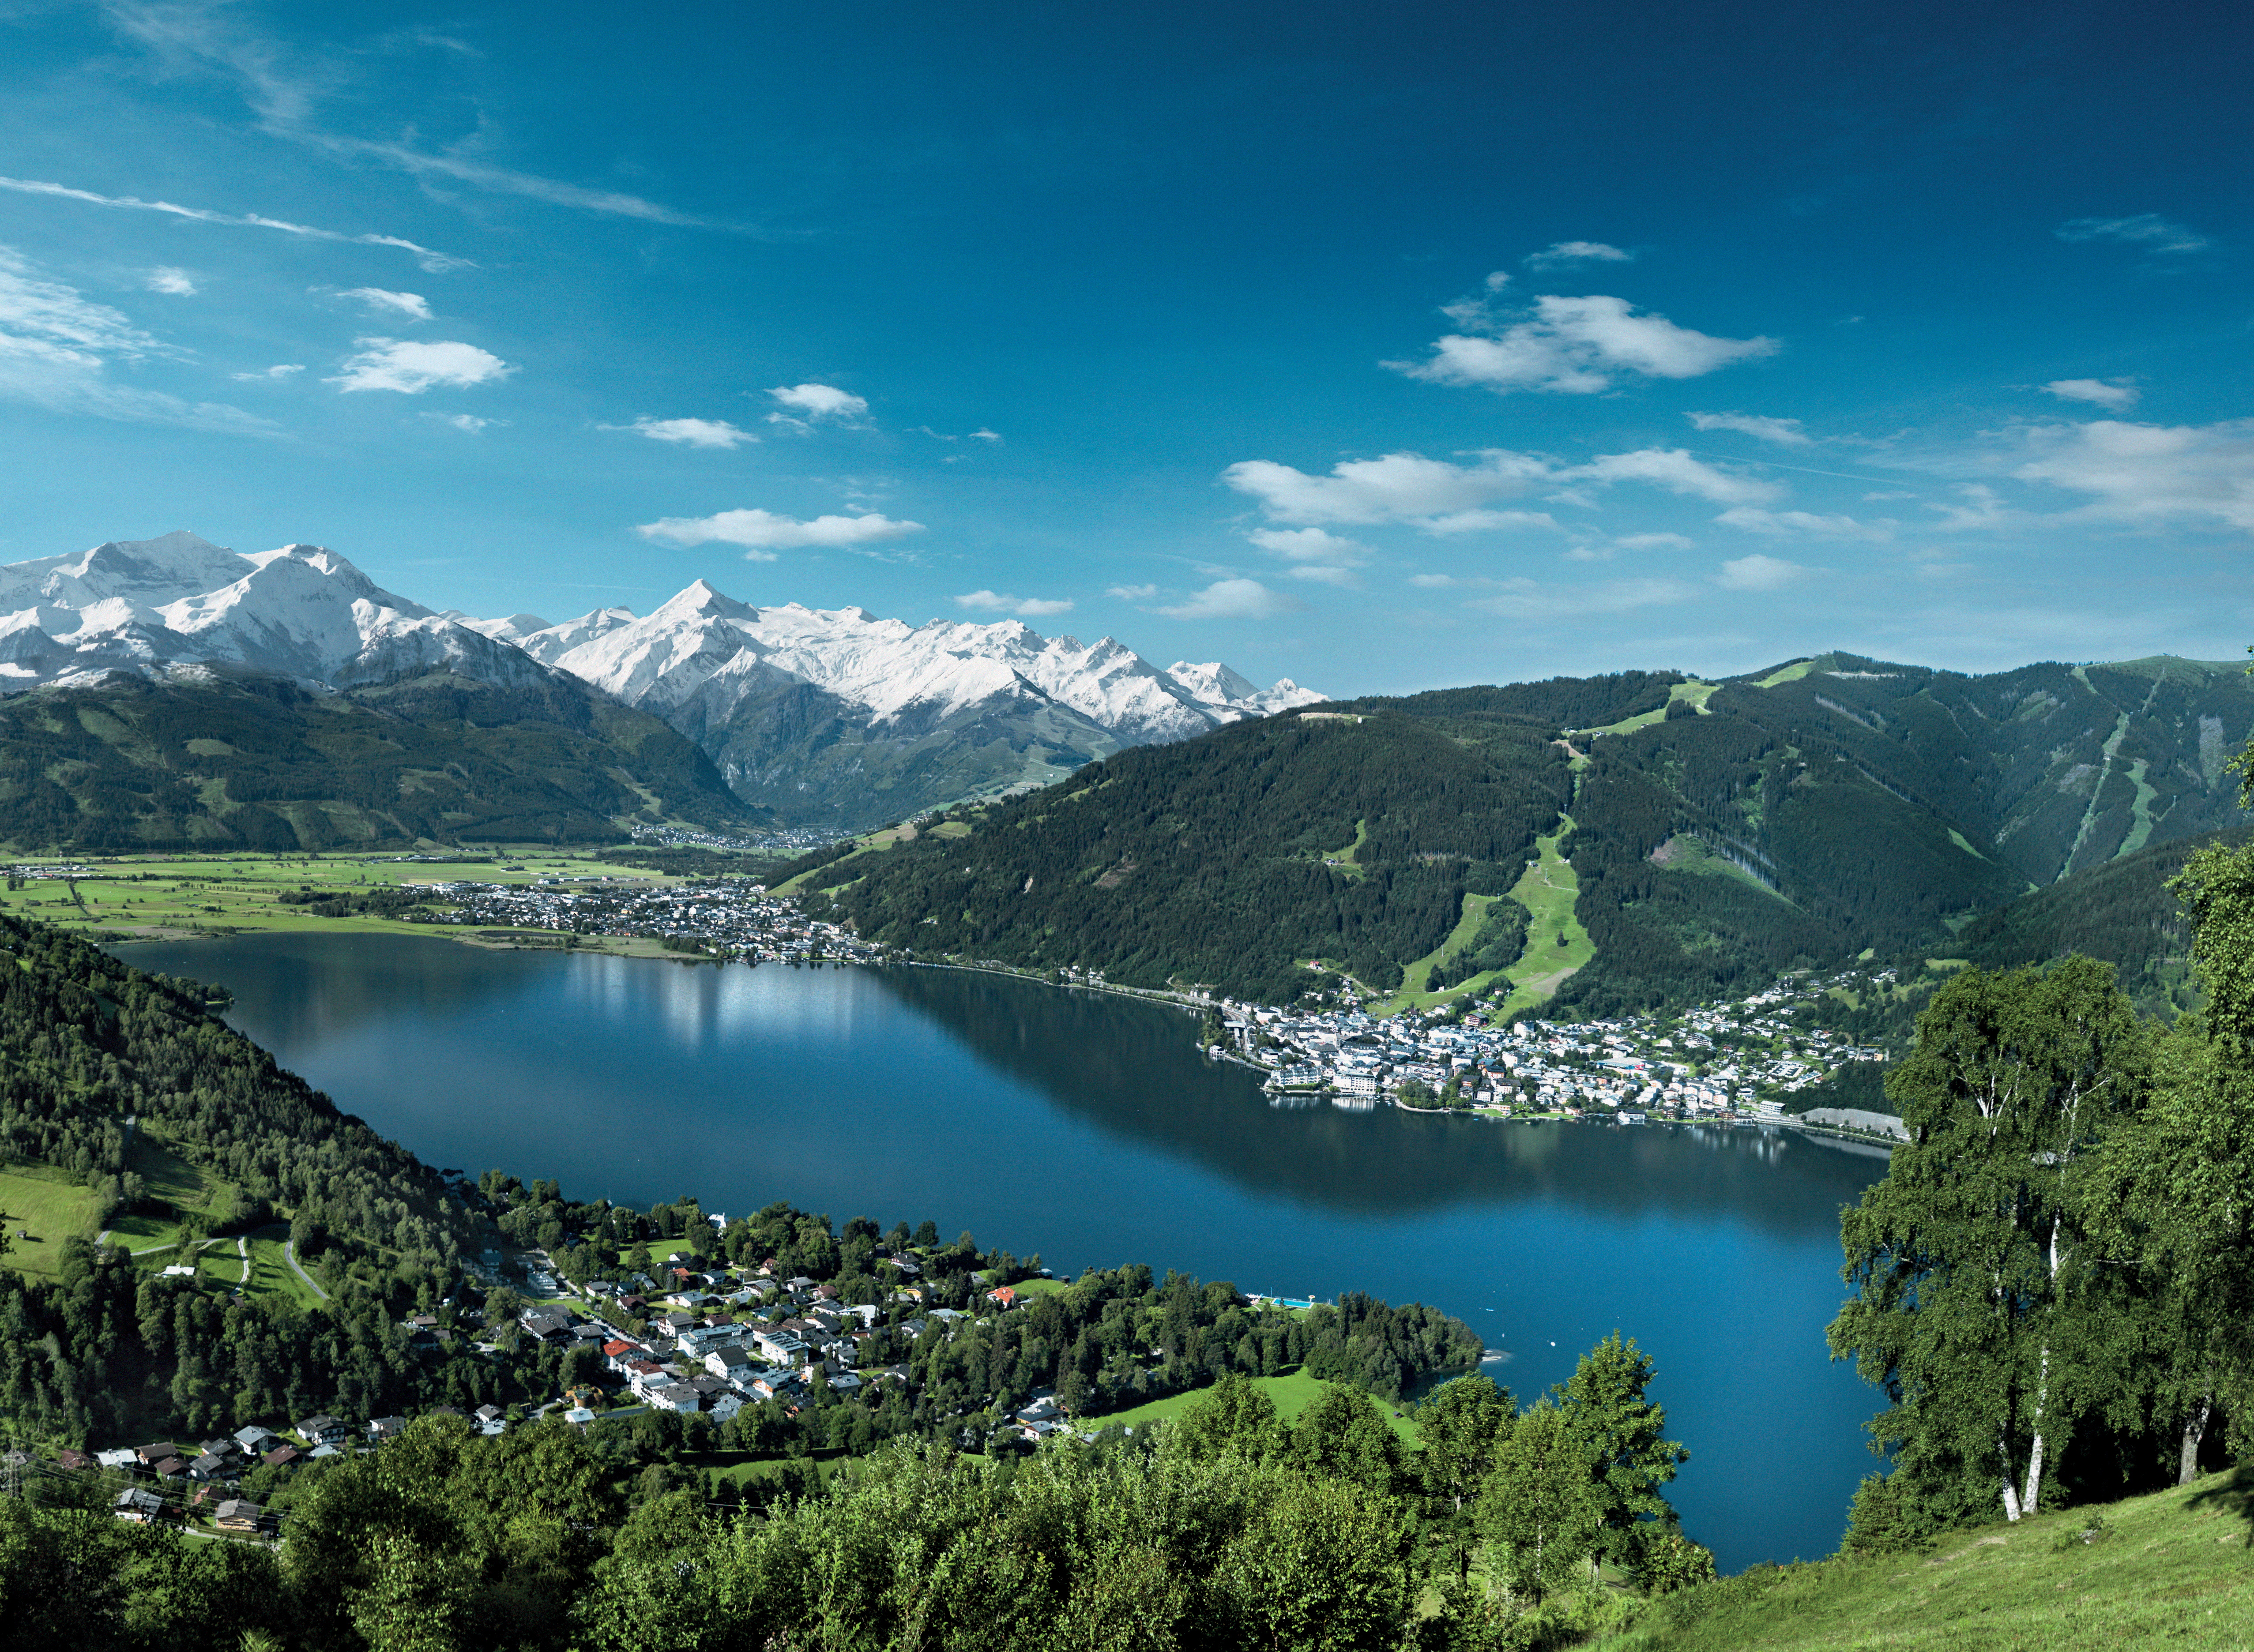 zell am see men Two stylish self catering 3 bedroom holiday rentals in the centre of zell am see each sleeps 8 people and is close to all amenities.